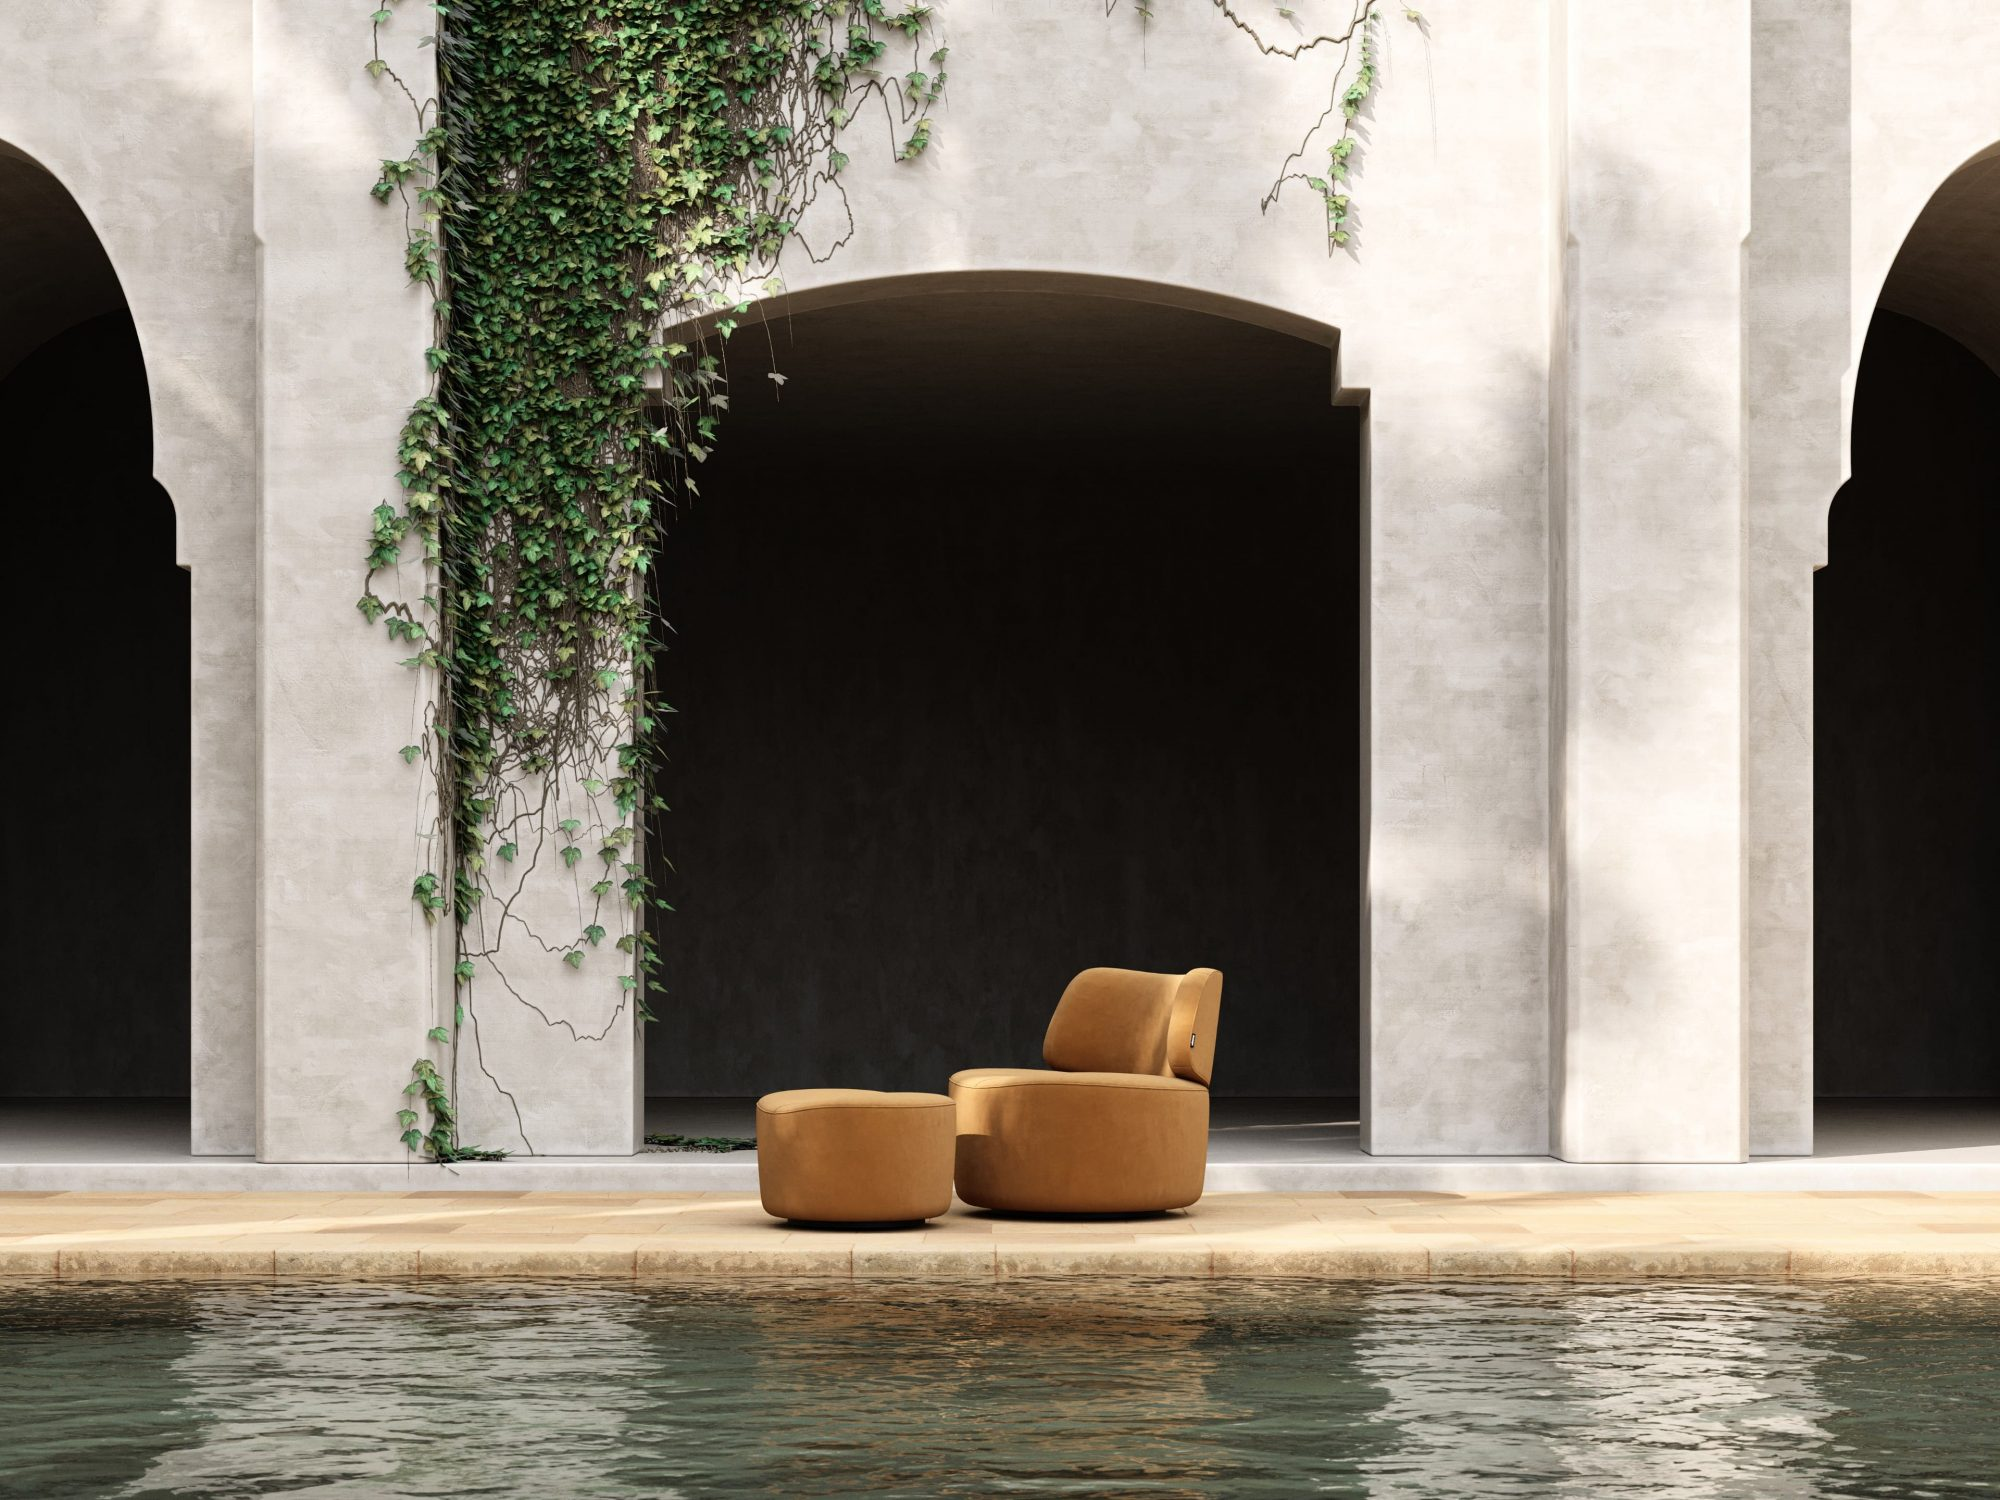 harmony-armchair-domkapa-velvet-living-room-interior-design-7-2000x1500